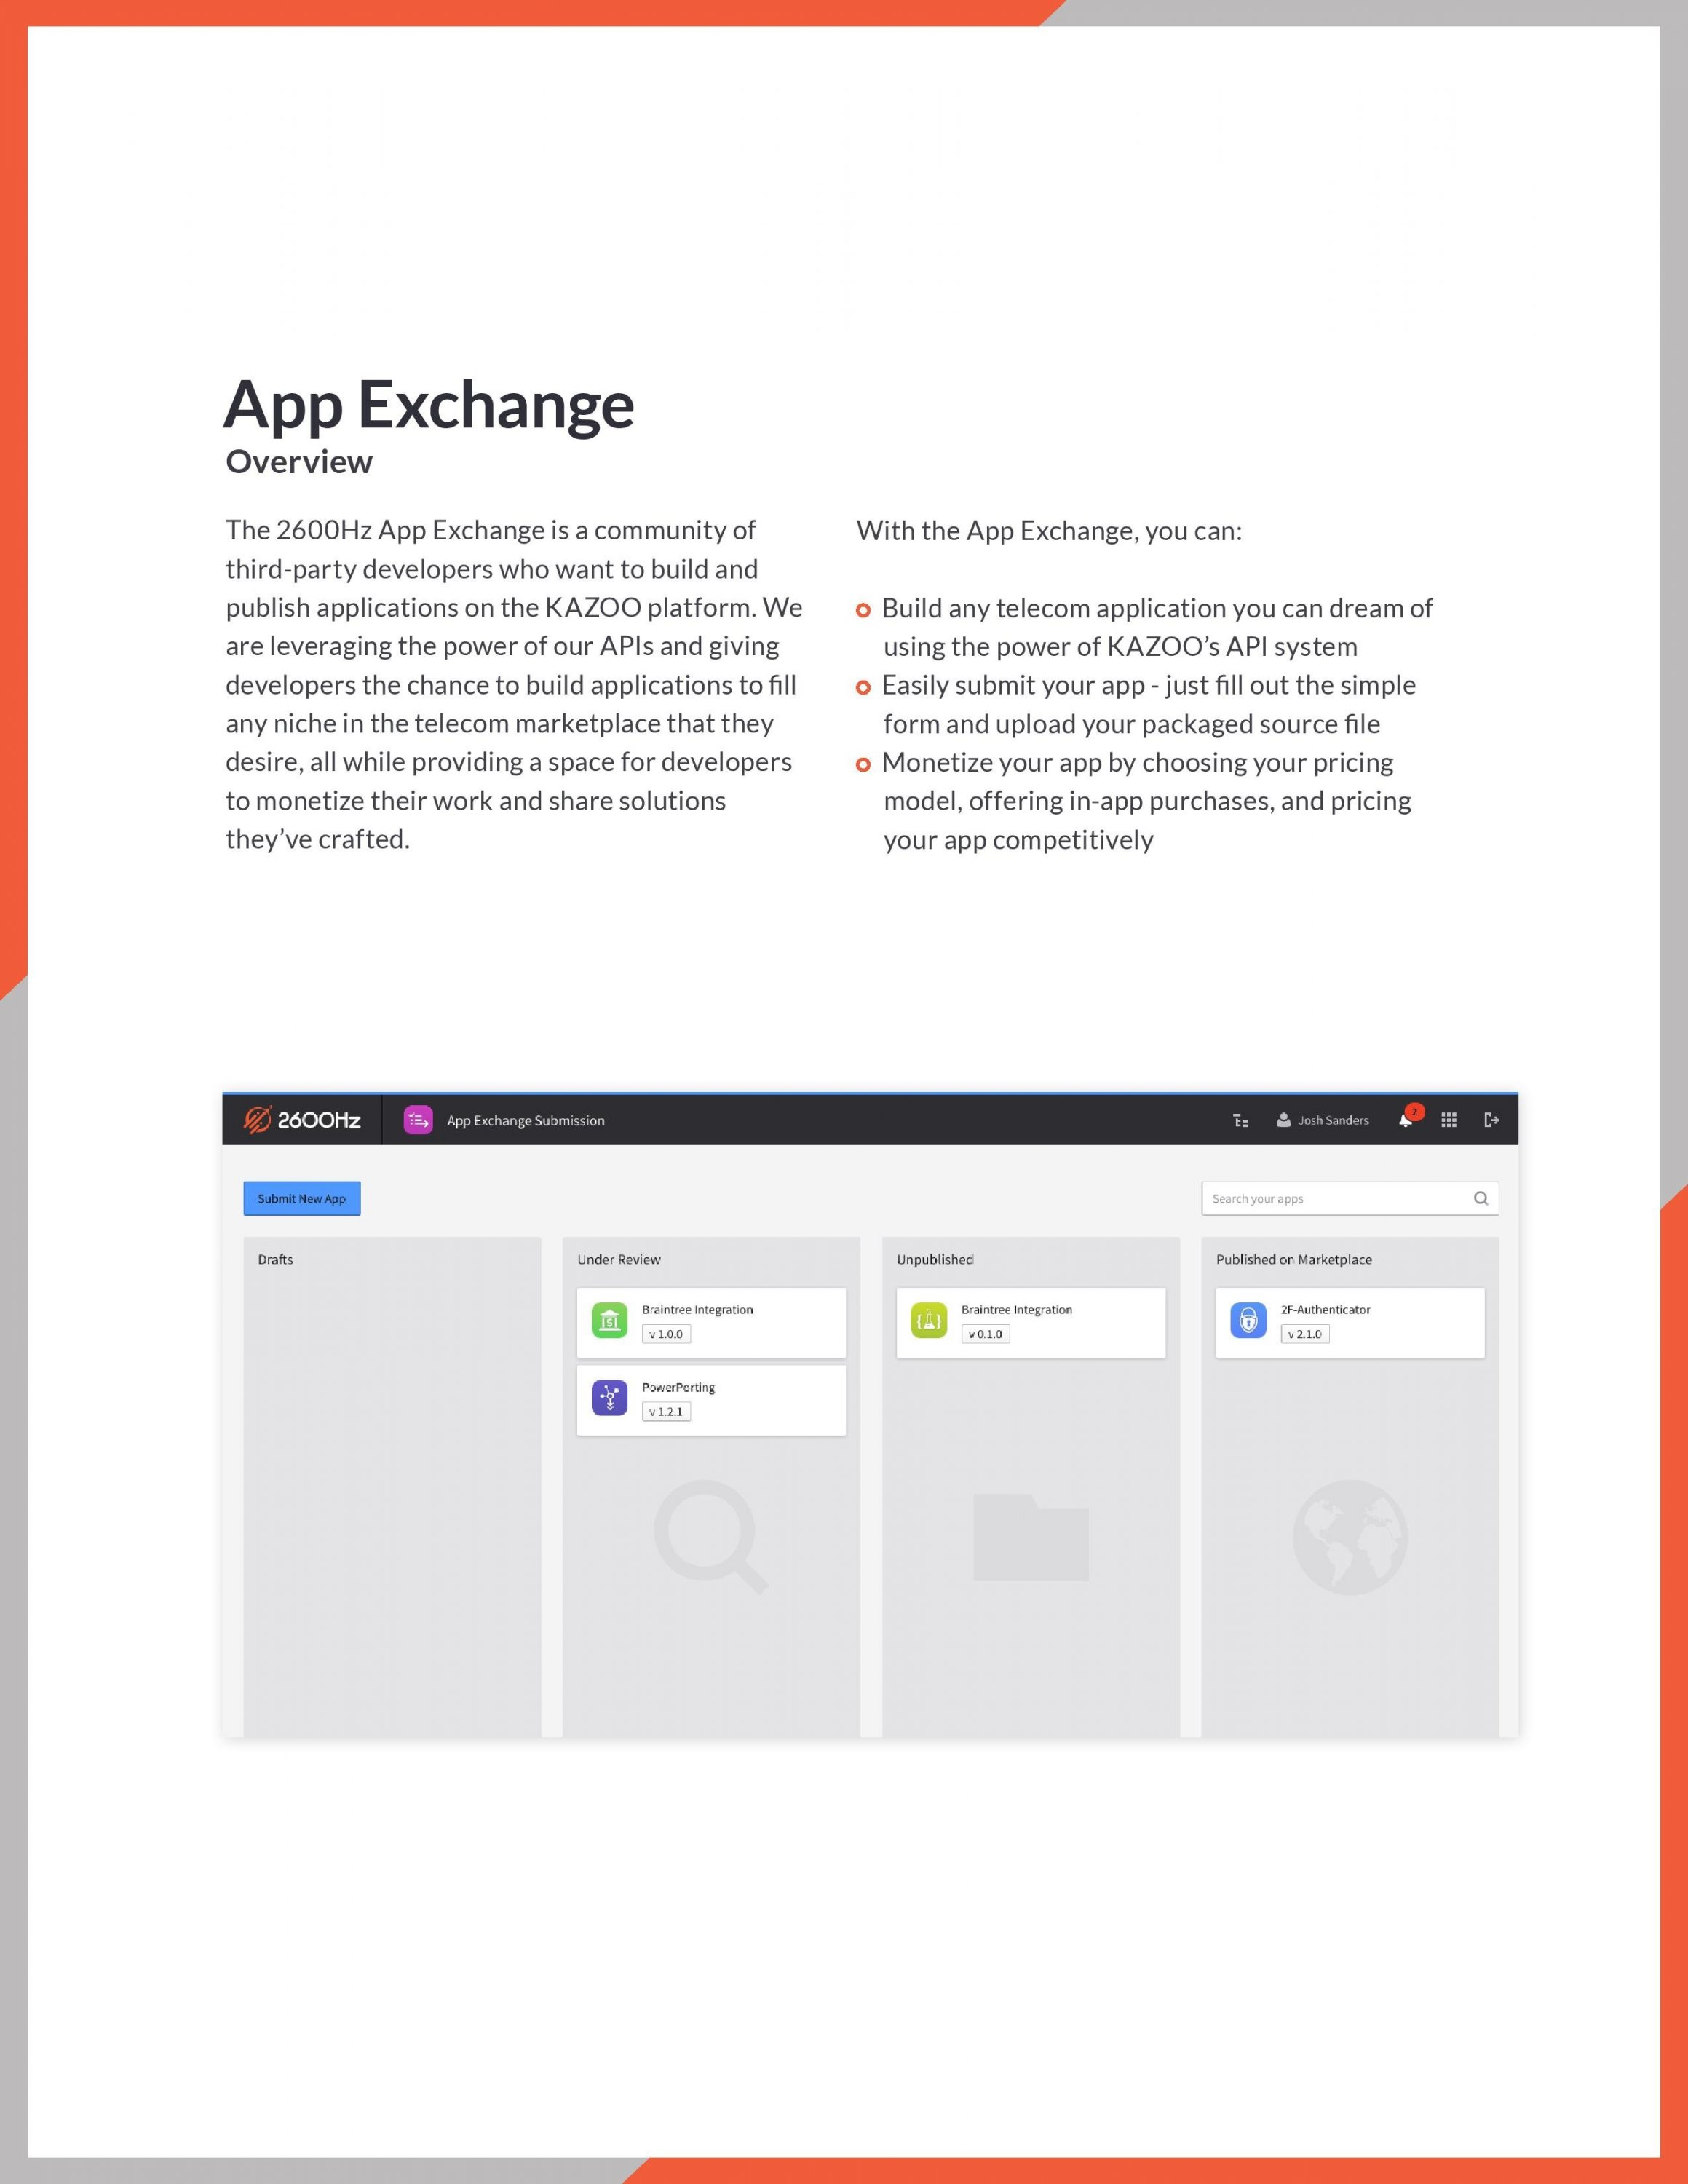 2600Hz-App-Exchange-Overview_17Dec19-page-002.jpg